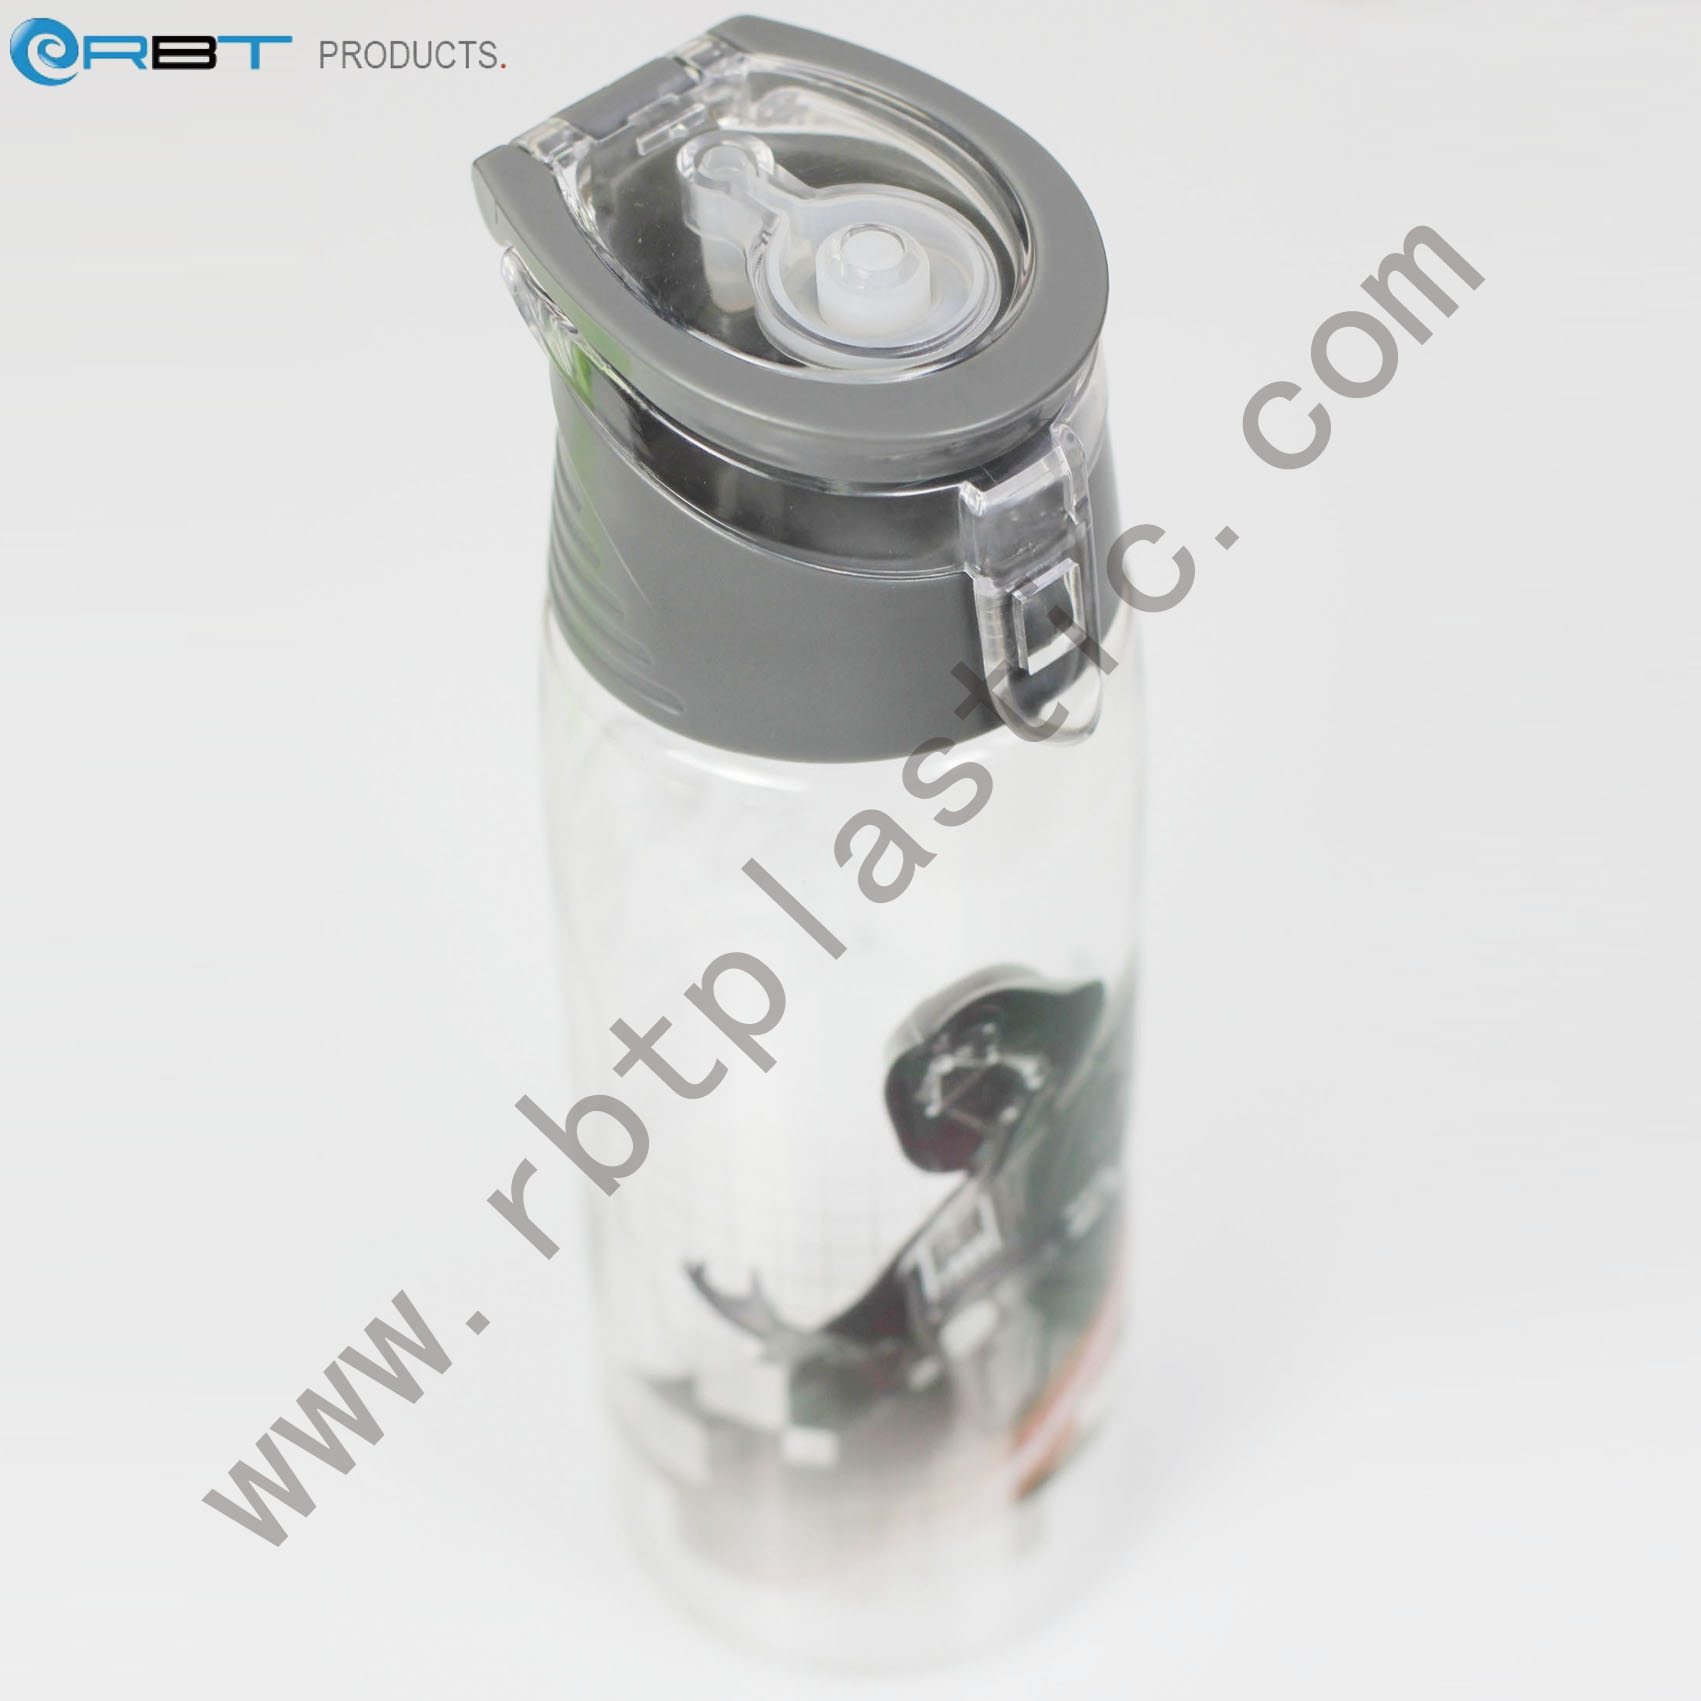 Space cup RBT-7085